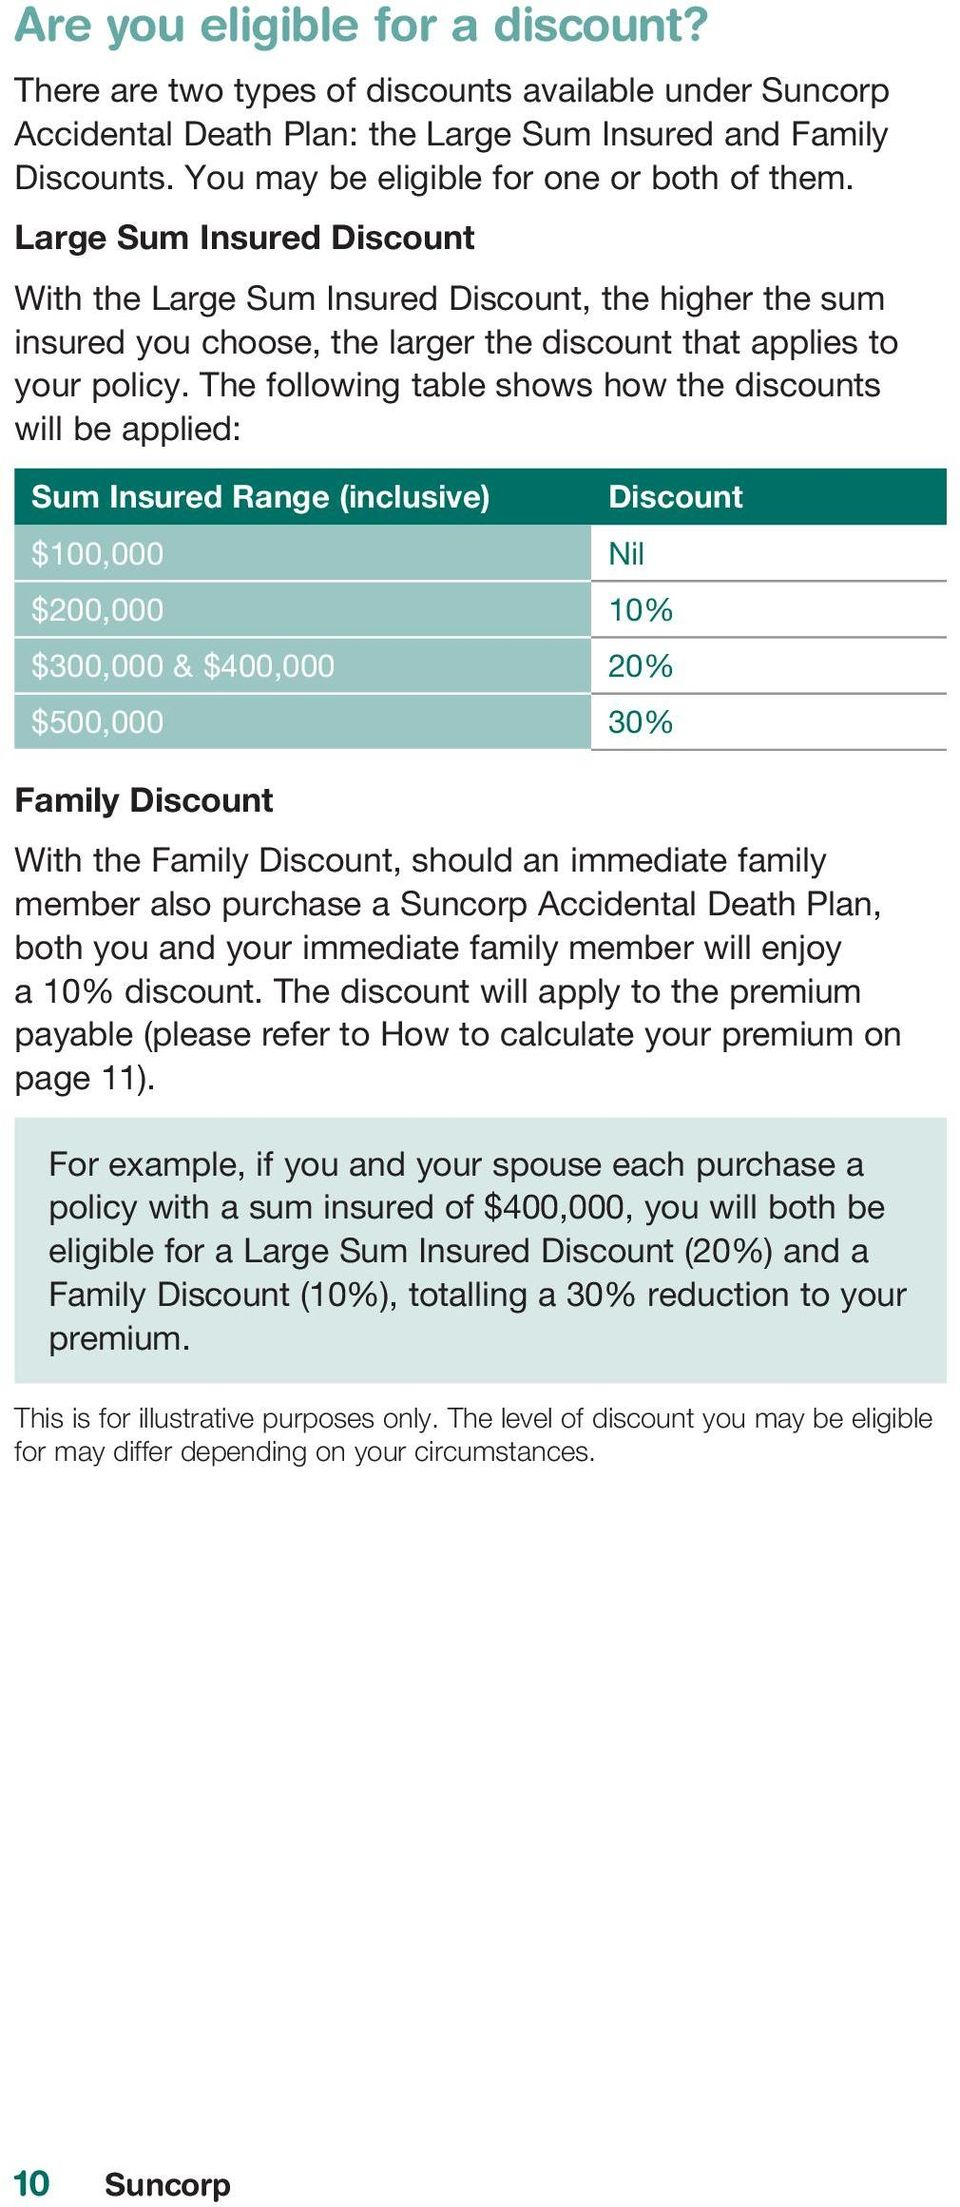 The following table shows how the discounts will be applied: Sum Insured Range (inclusive) Discount $100,000 Nil $200,000 10% $300,000 & $400,000 20% $500,000 30% Family Discount With the Family